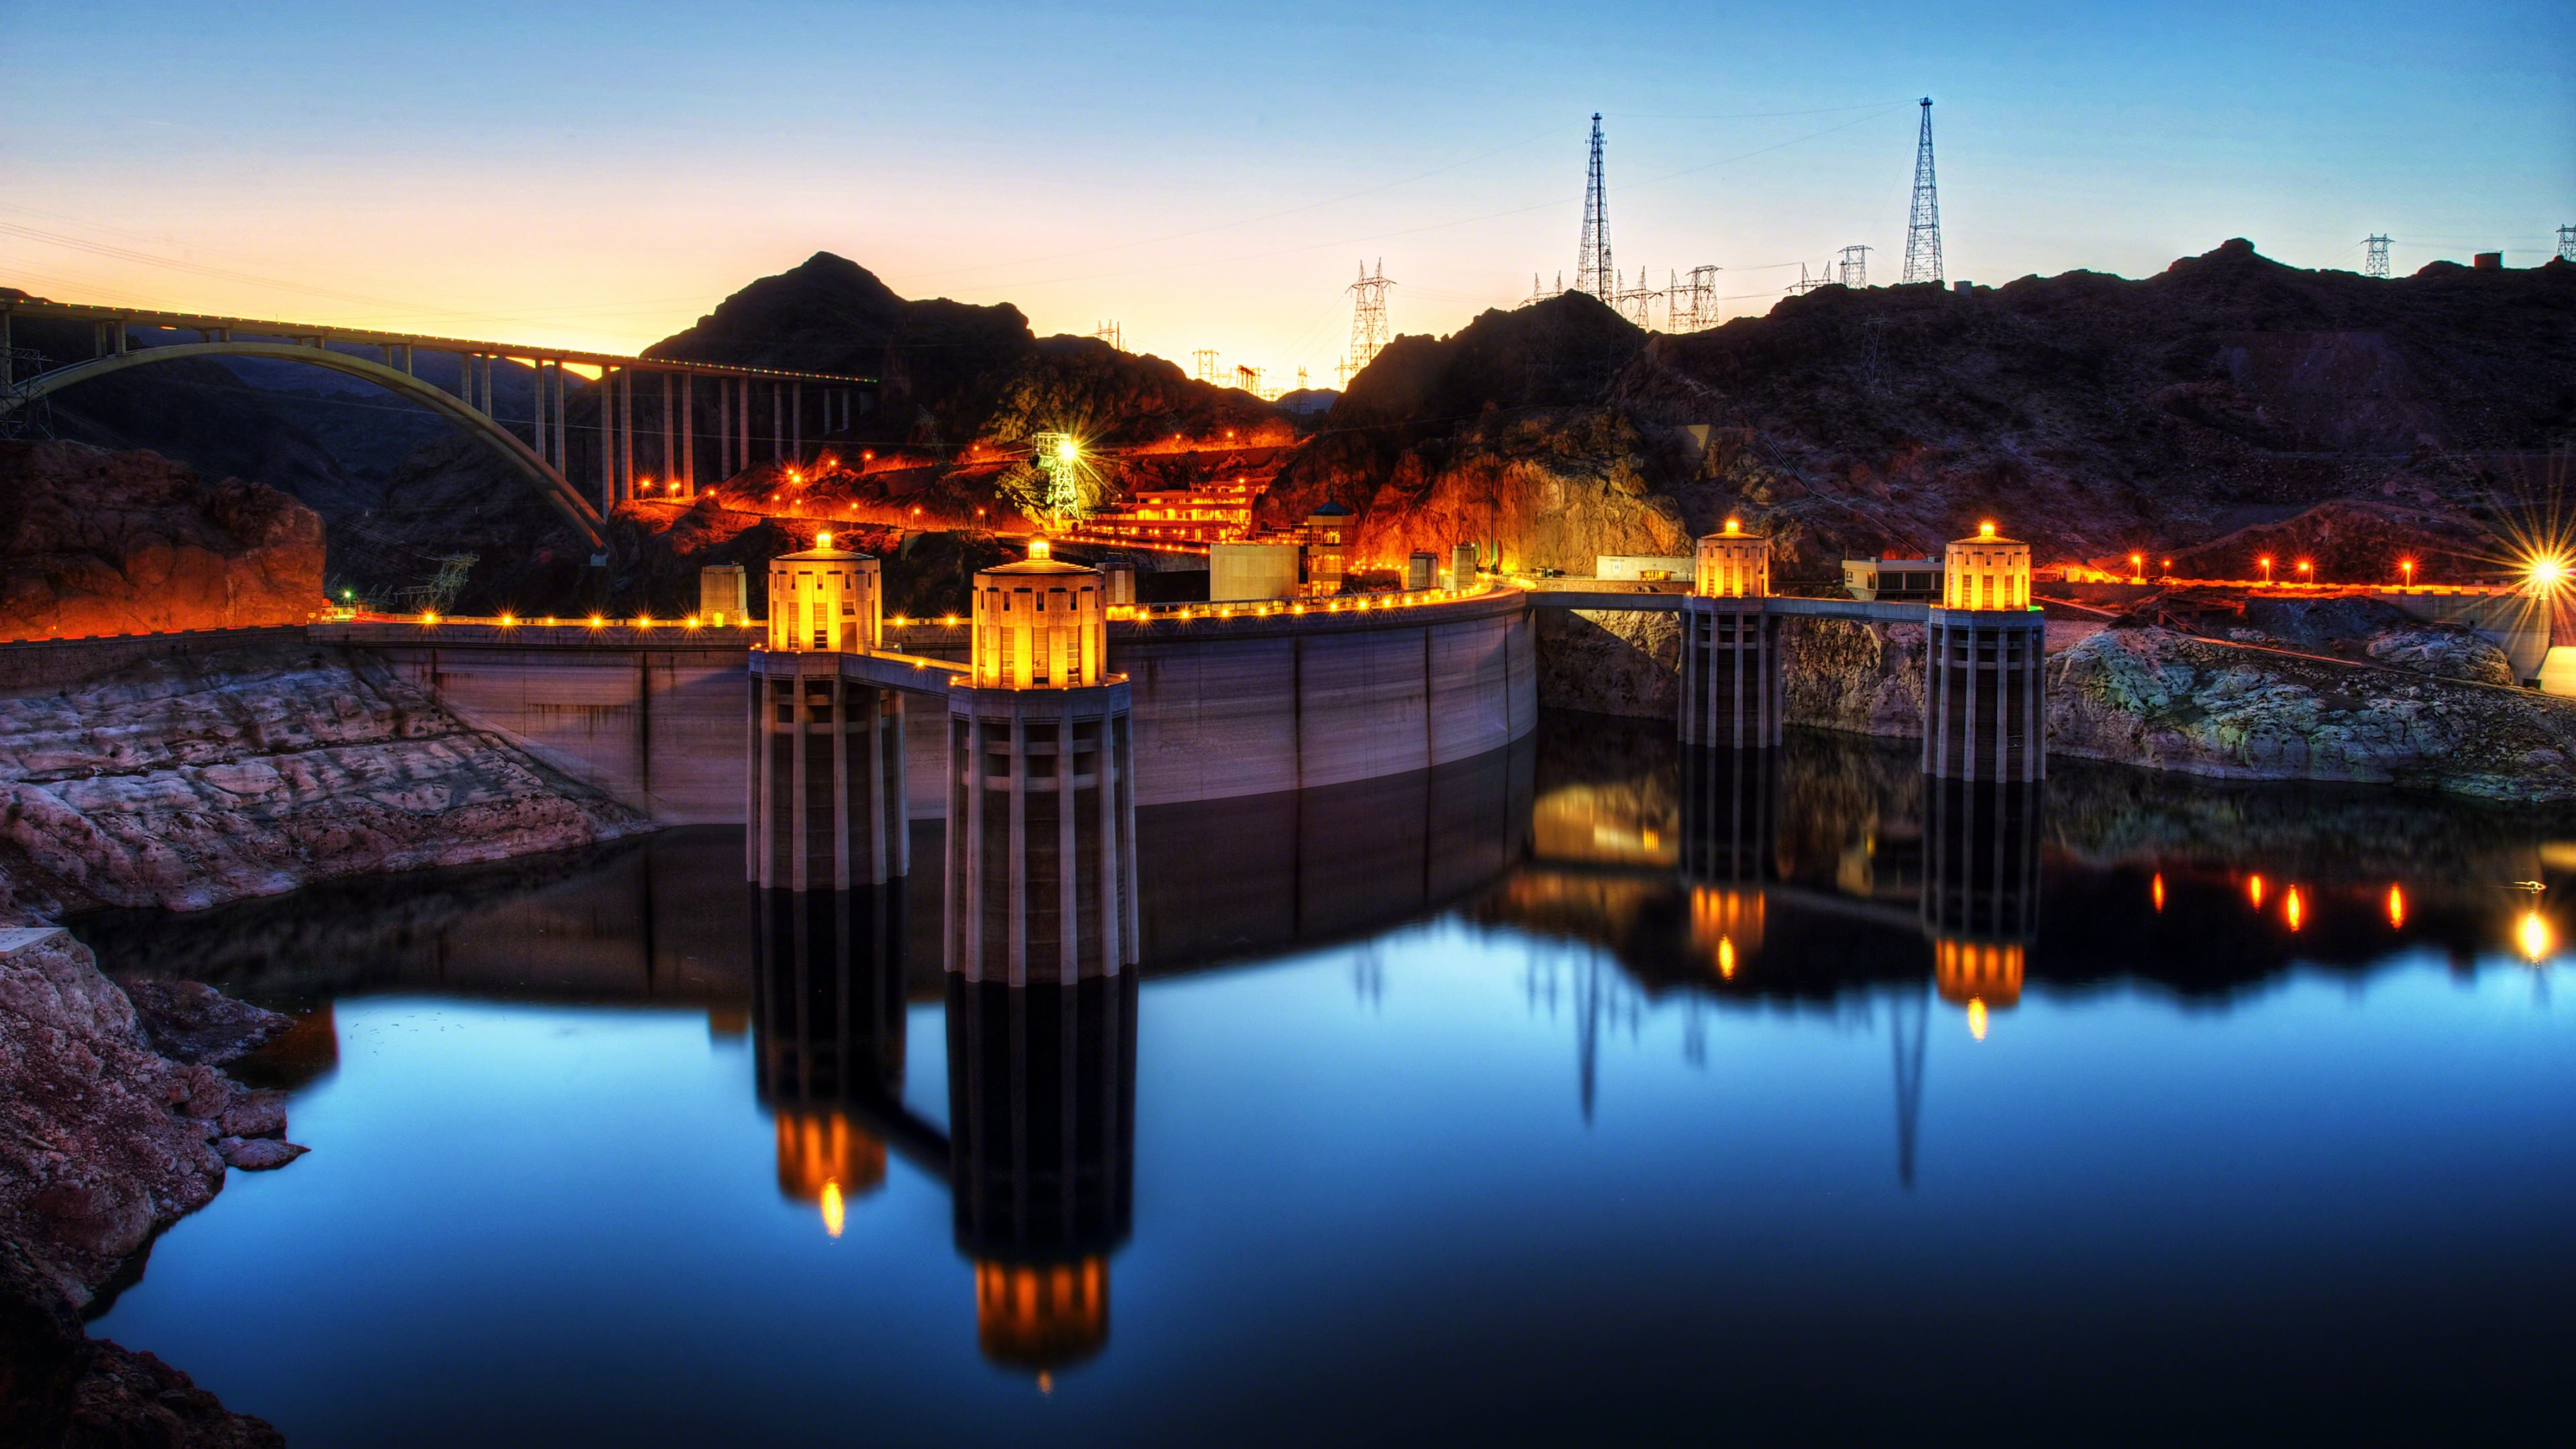 49] Hoover Dam Wallpapers on WallpaperSafari 3840x2160